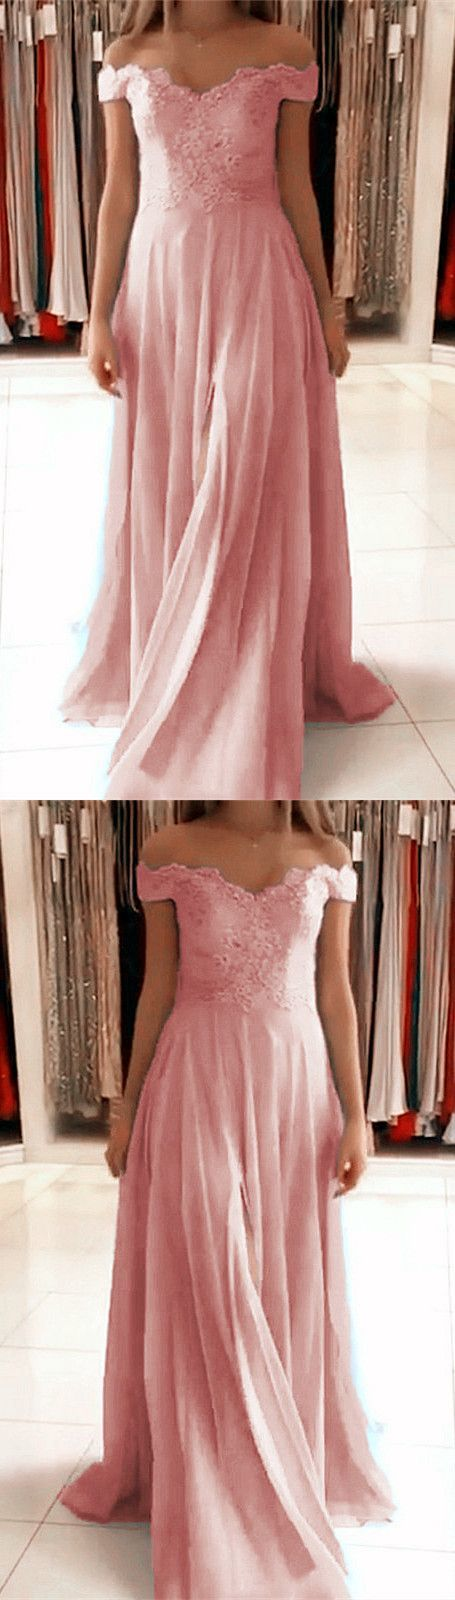 light pink chiffon bridesmaid dresses off the shoulder